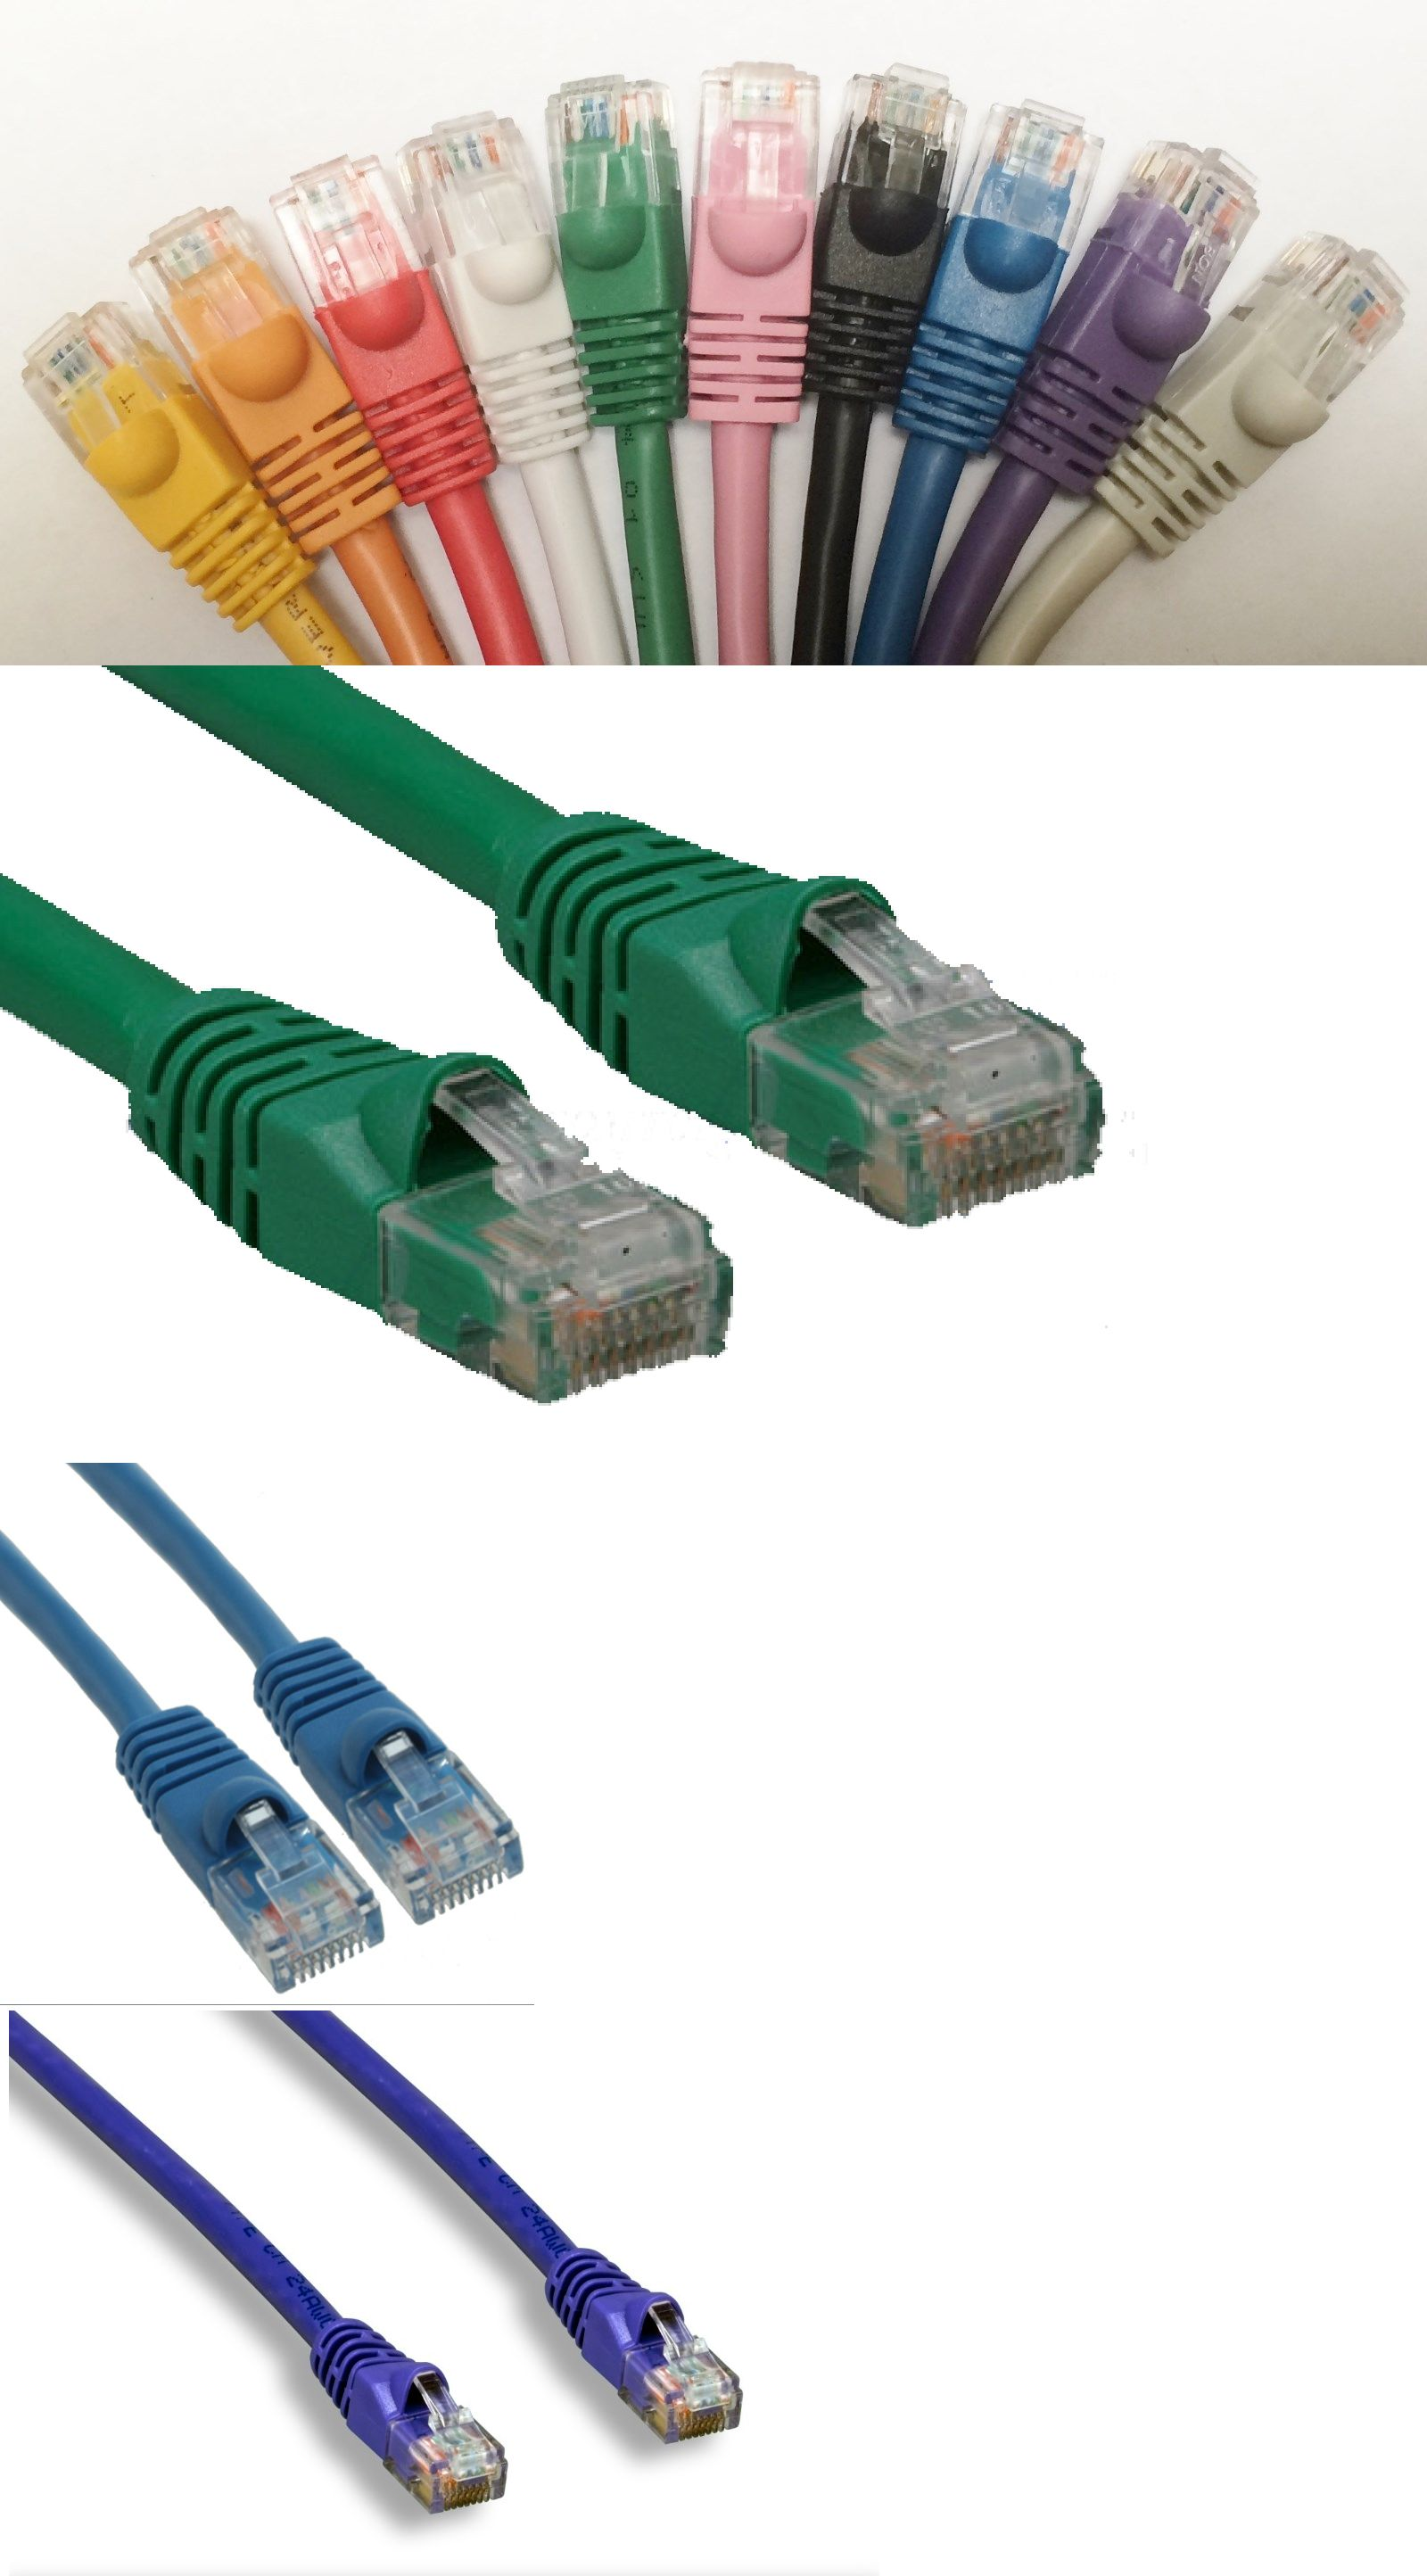 50 Pack Lot 7ft CAT6 Ethernet Network LAN Patch Cable Cord 550 MHz RJ45 Blue